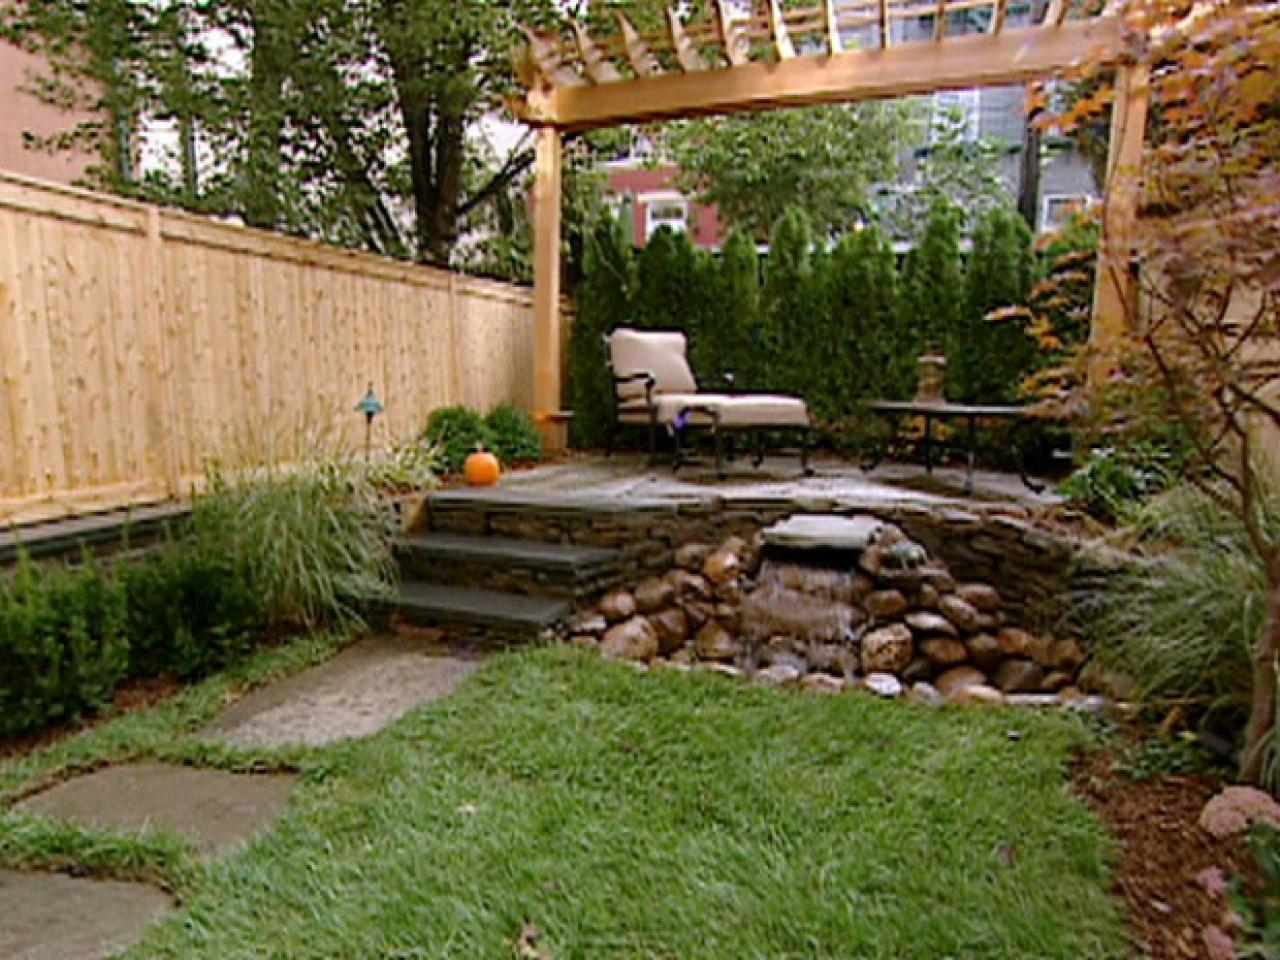 New Landscaping Ideas For Small Yards Outdoor Design York House for 10 Clever Ways How to Build Outdoor Landscaping Ideas Backyard